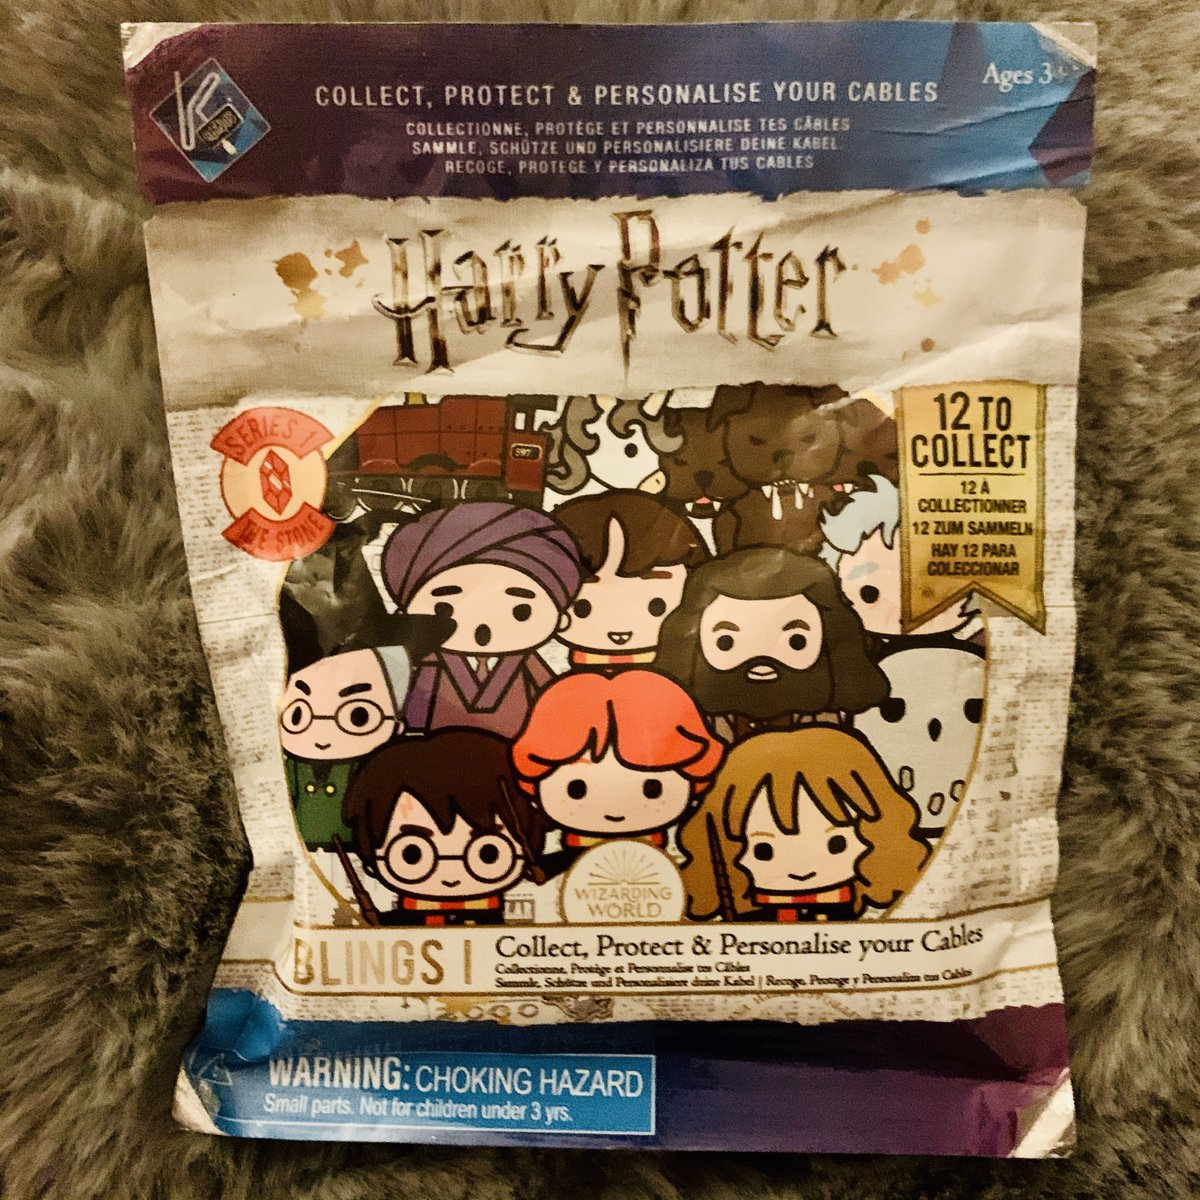 7 hours left to #ENTERTOWIN-->   Who wants their own Harry Potter K- Bling? I'm kicking off two weeks of giving away some of my favorite items from this year starting now! http://bit.ly/344H0p2pic.twitter.com/722ClZwbC4